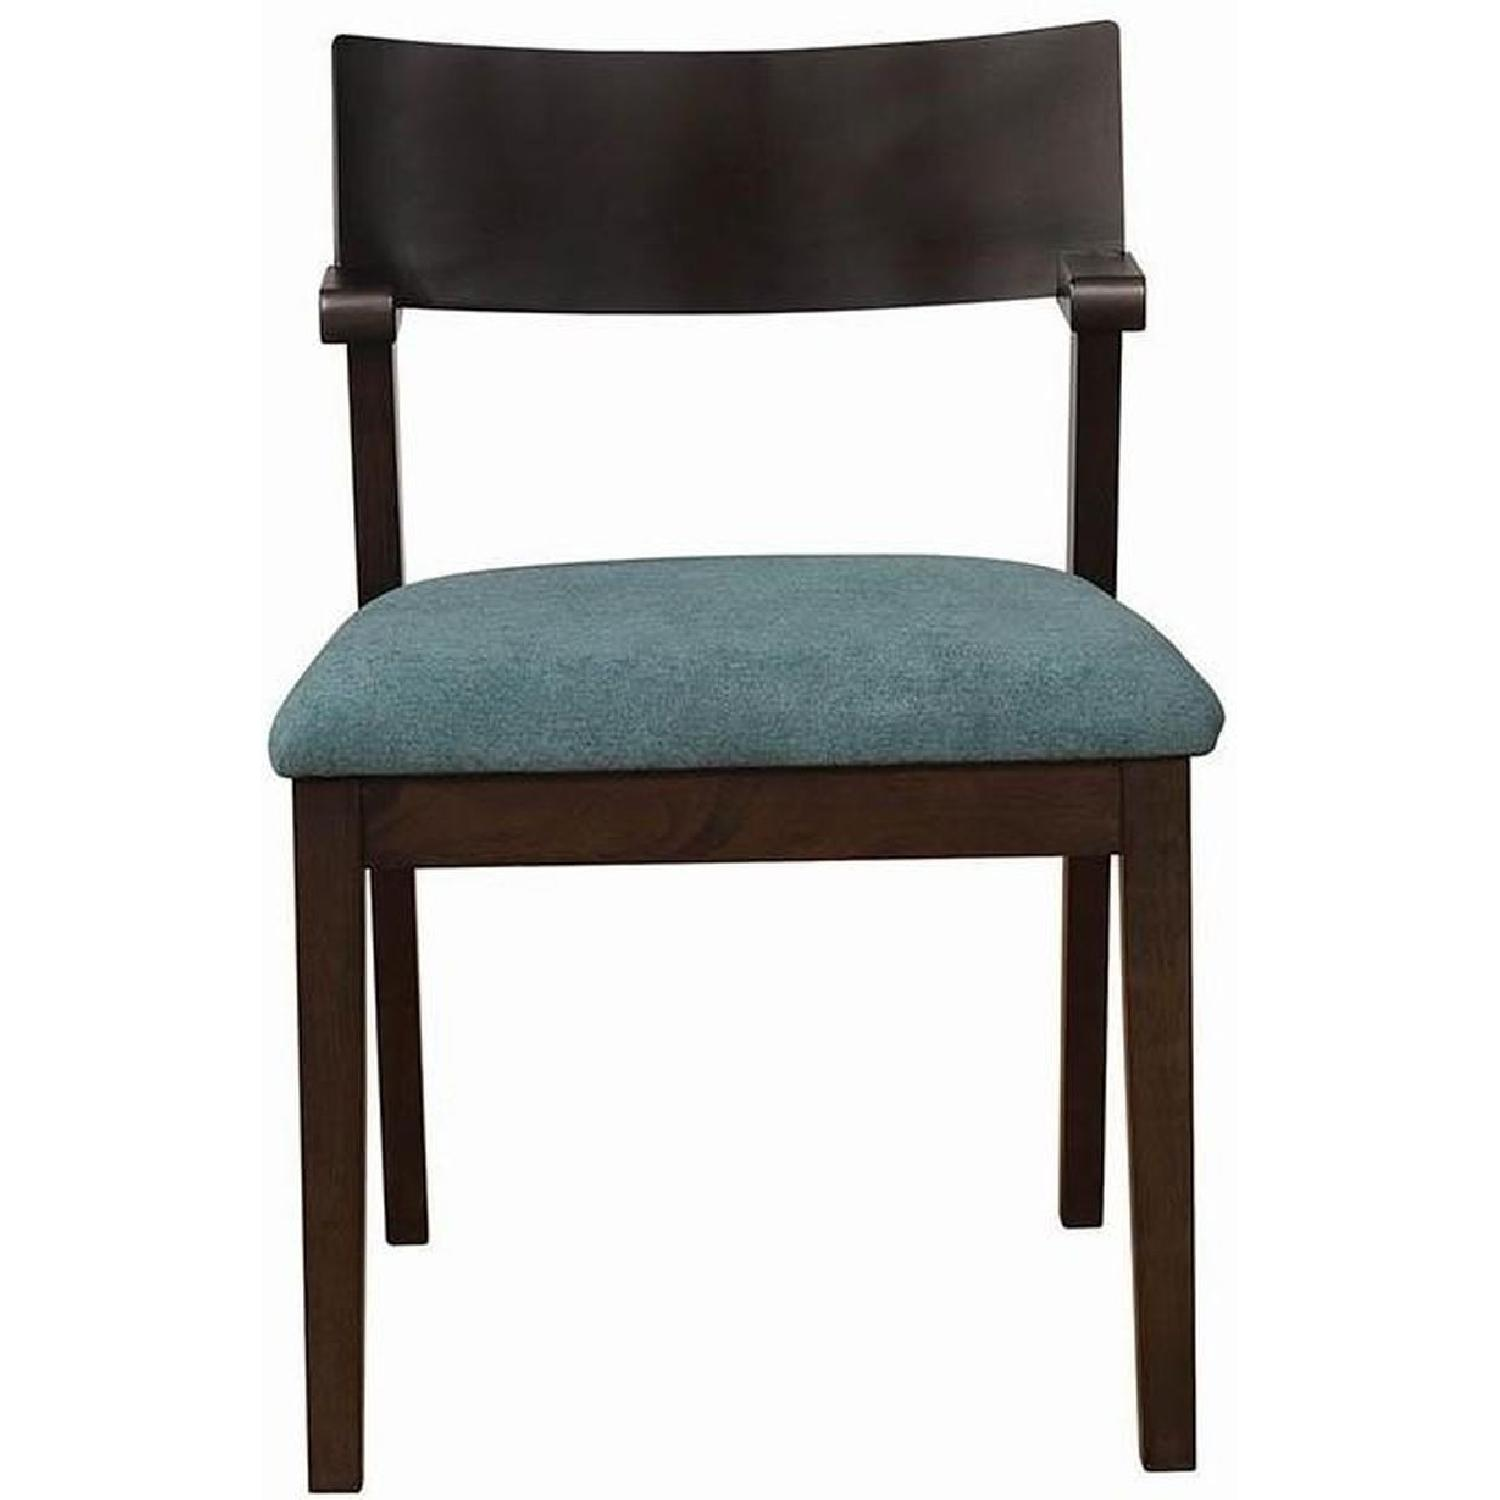 Mid Century Style Dining Chair w/ Teal Cushioned Seat - image-4